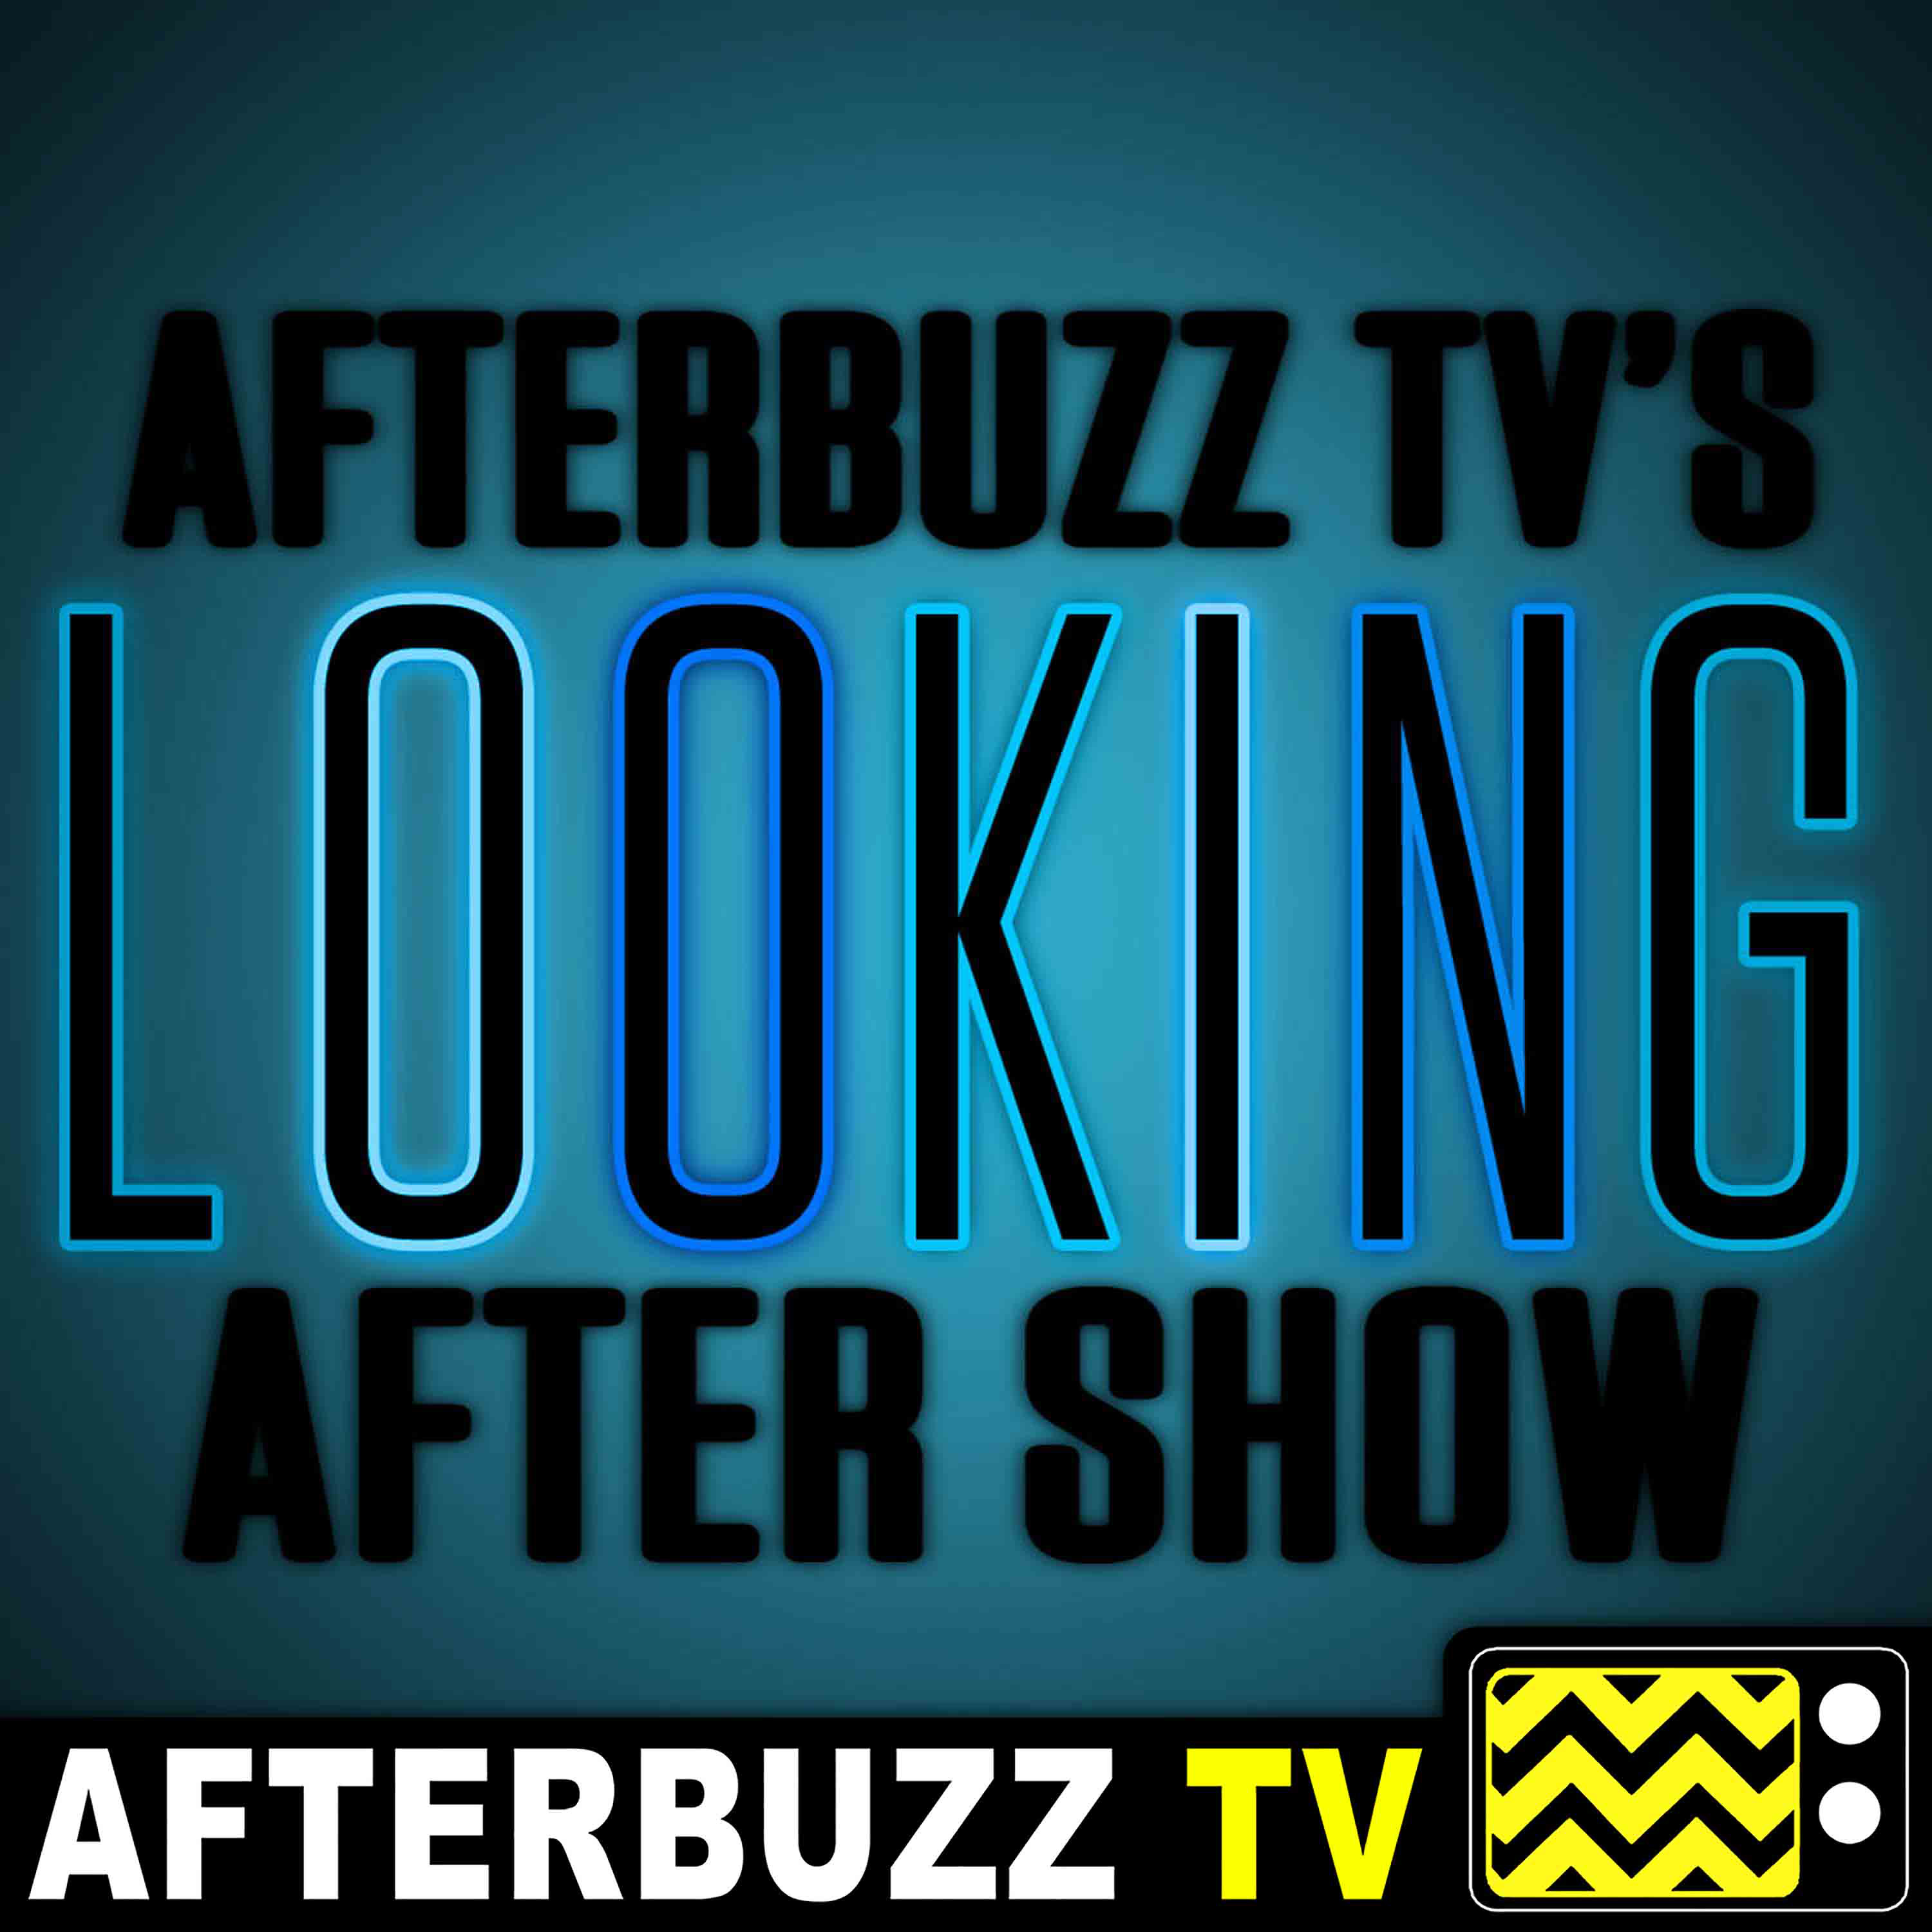 Looking Reviews & After Show - AfterBuzz TV